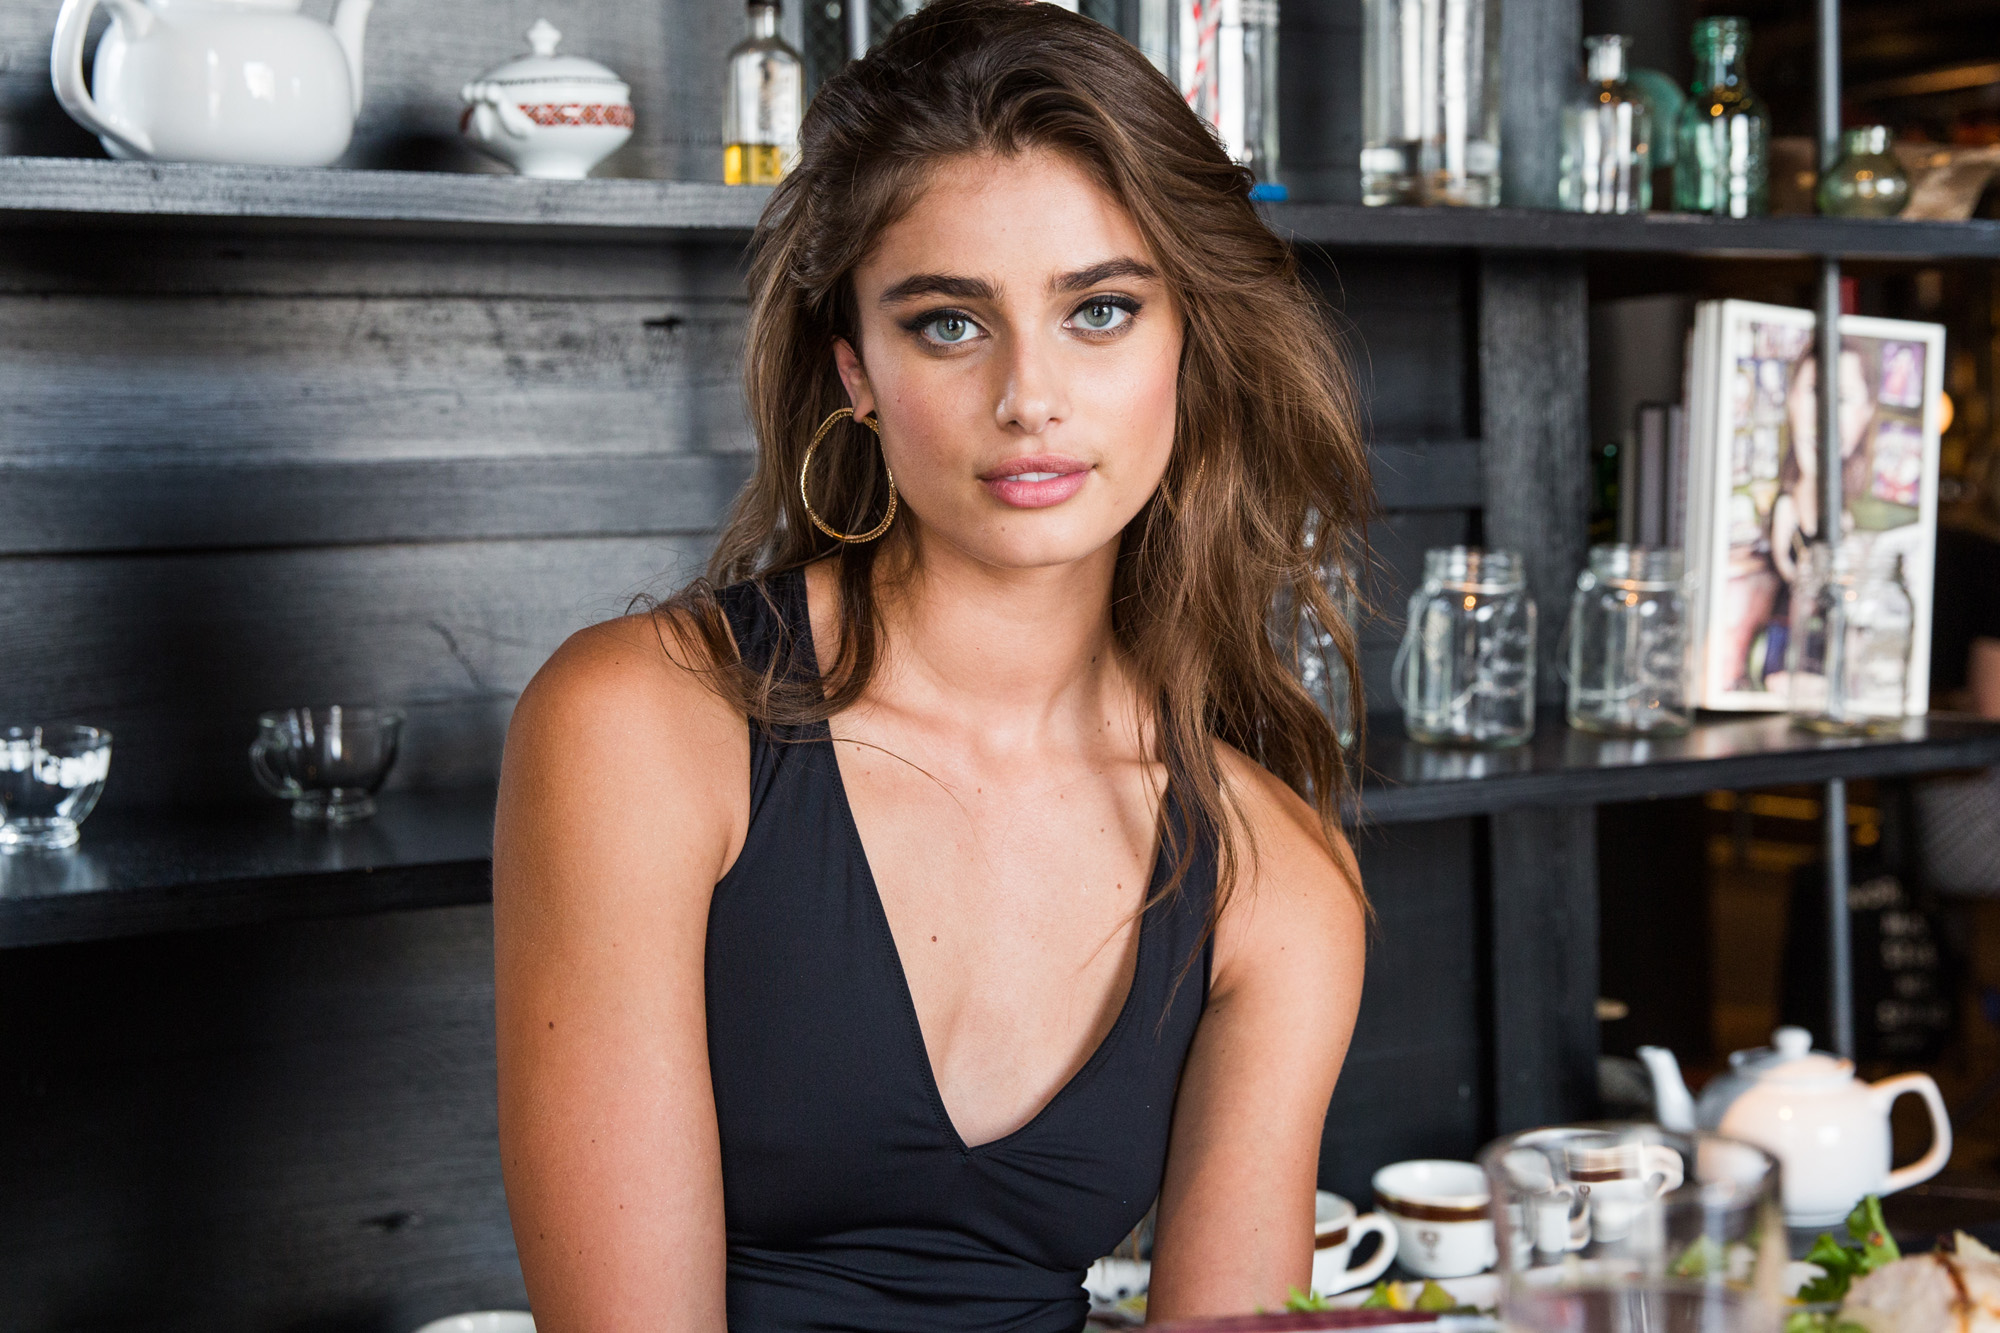 Pictures Taylor Hill nudes (18 photos), Tits, Paparazzi, Boobs, underwear 2017